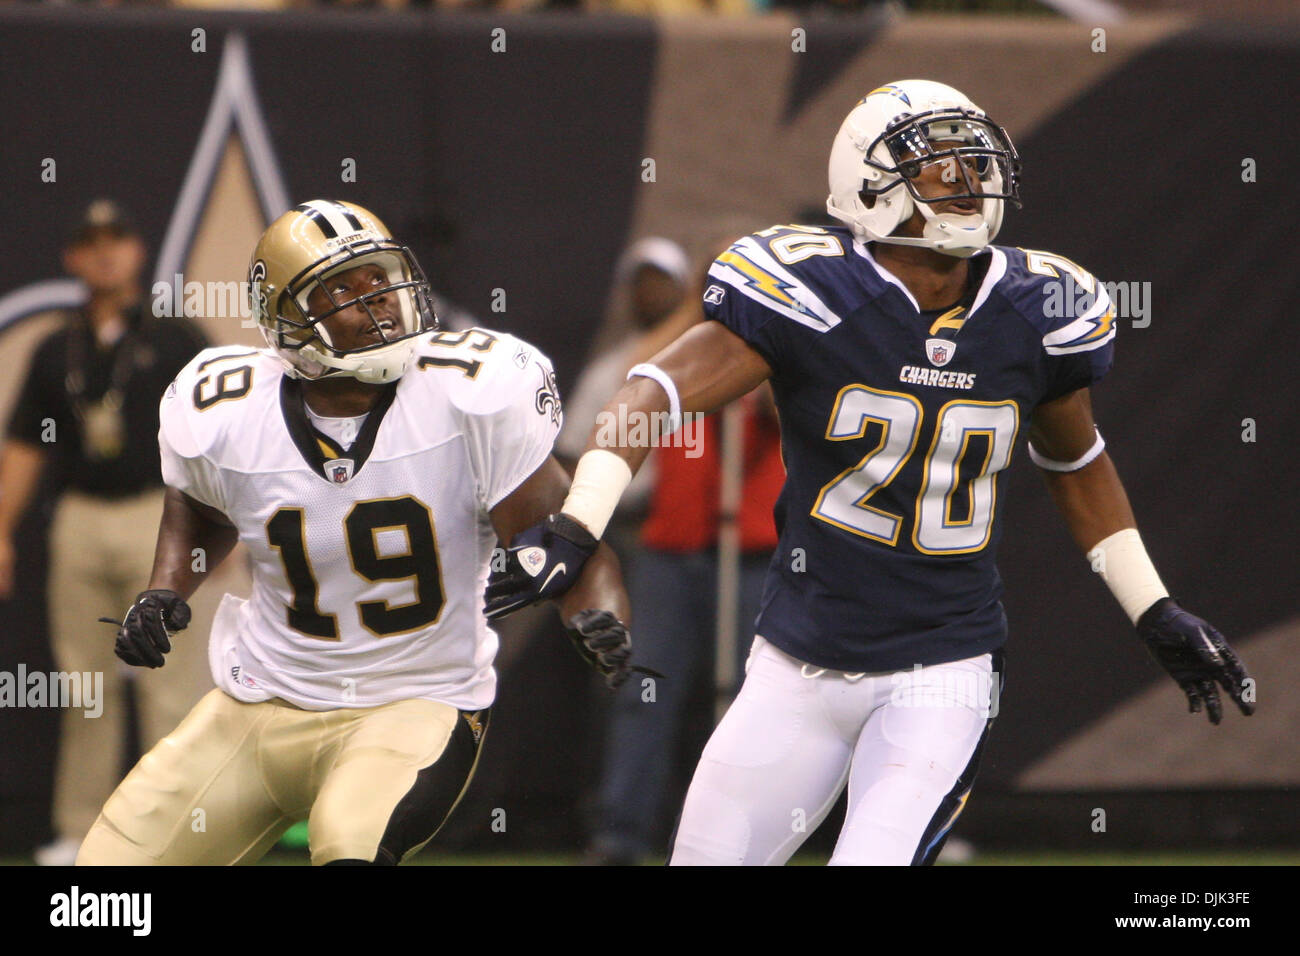 Aug 21, 2010: New Orleans Saints wide receiver Devery Henderson (19) and San Diego Chargers cornerback Antoine Cason Stock Photo